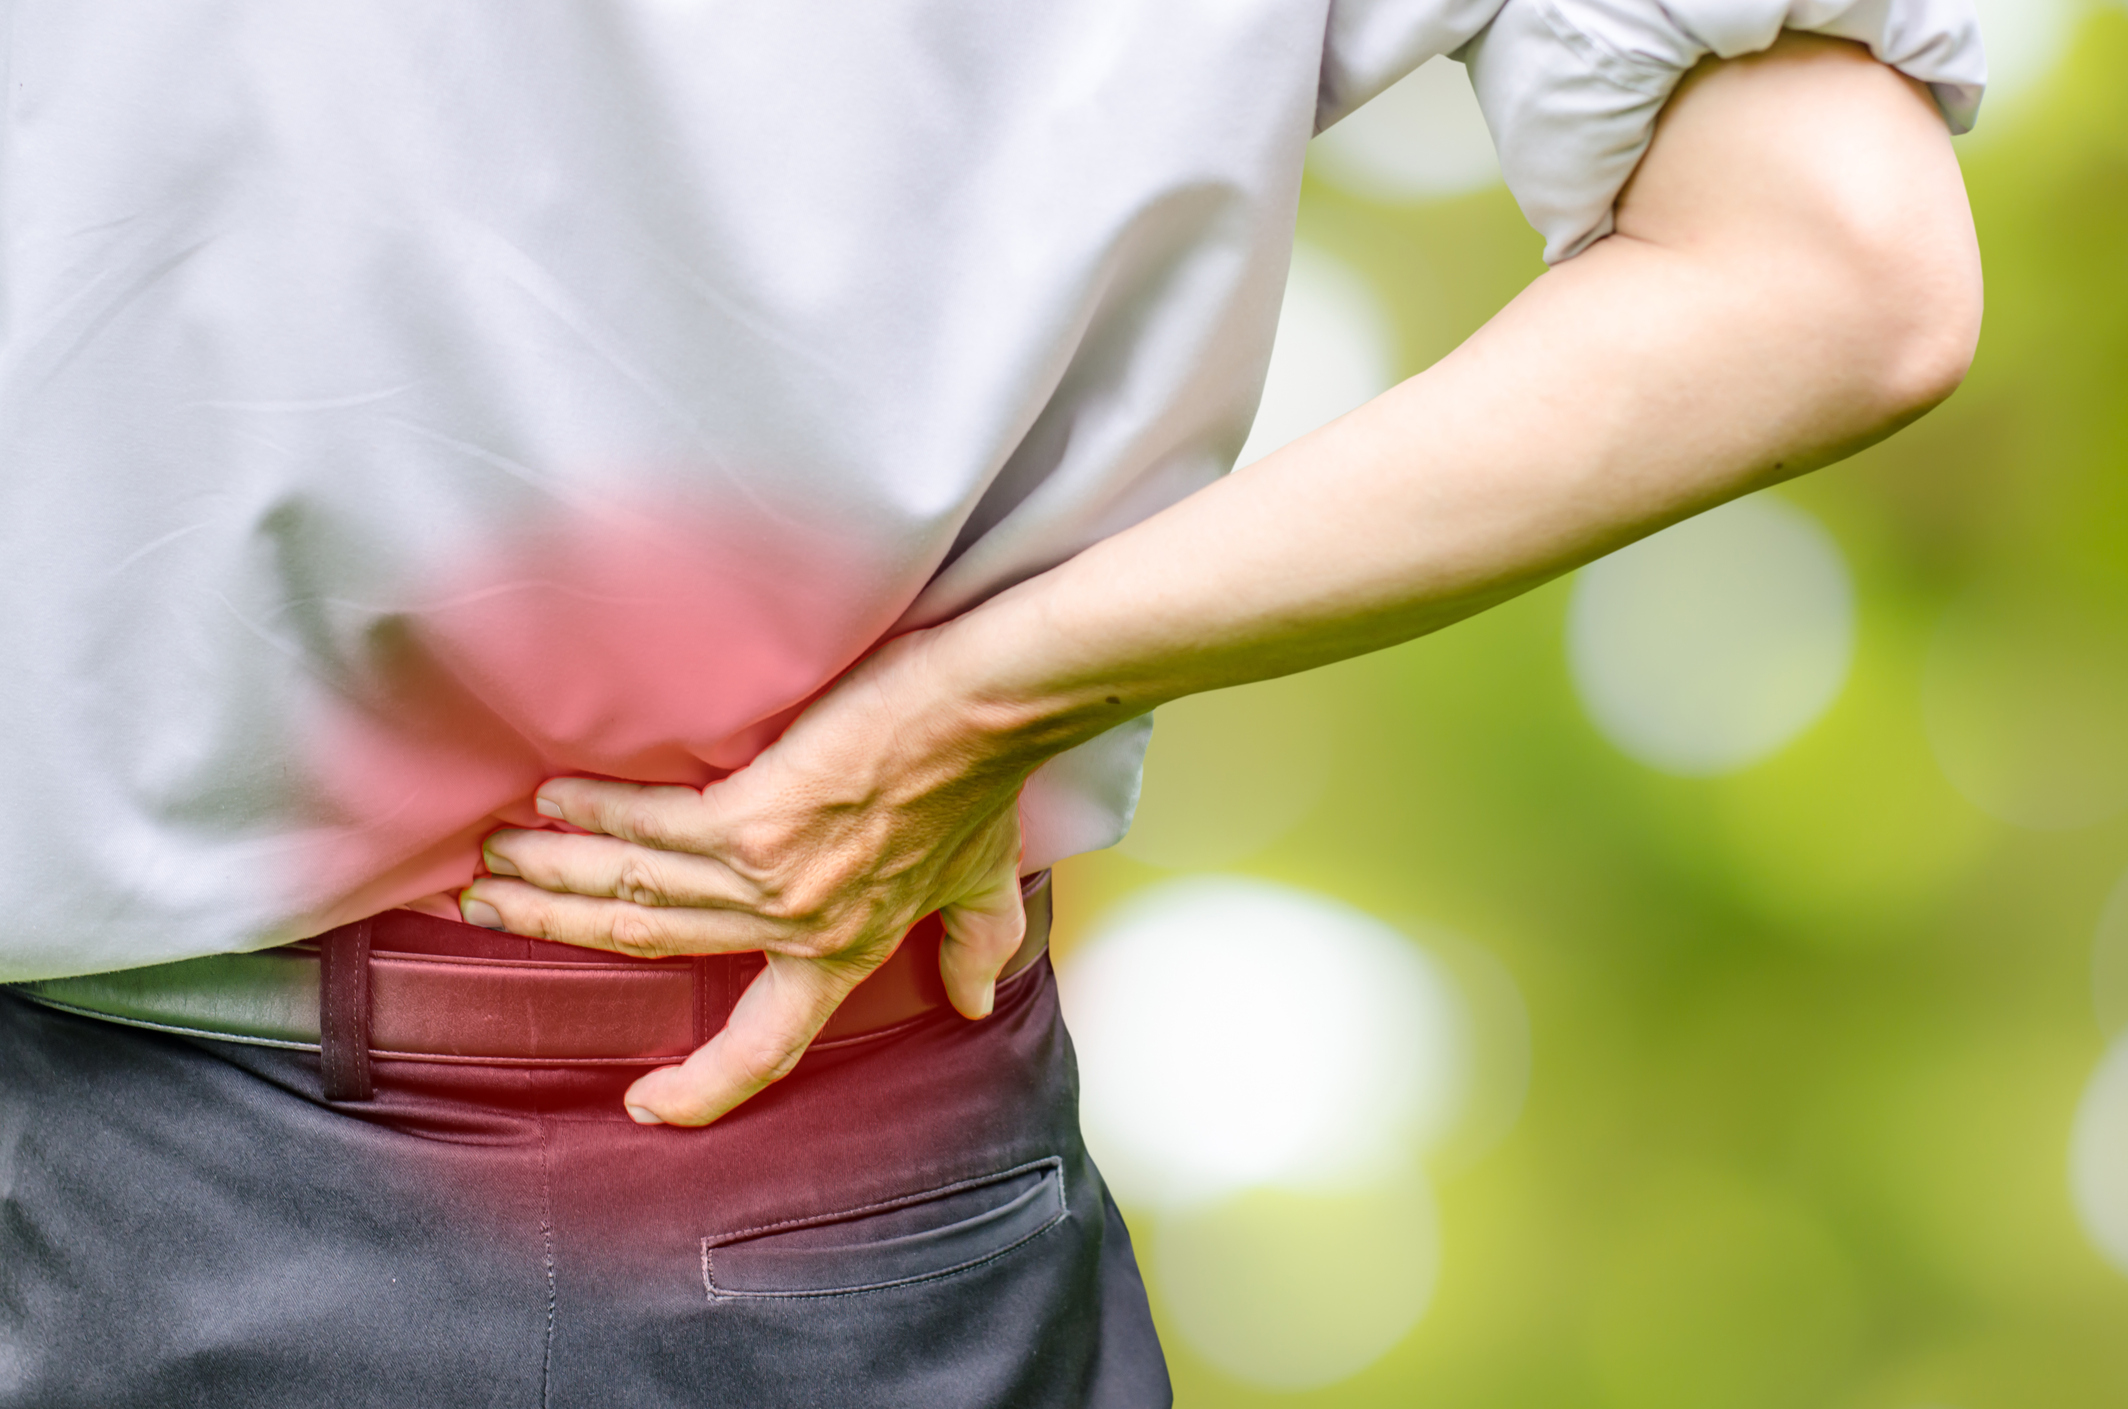 chiropractic for disc issues, back pain